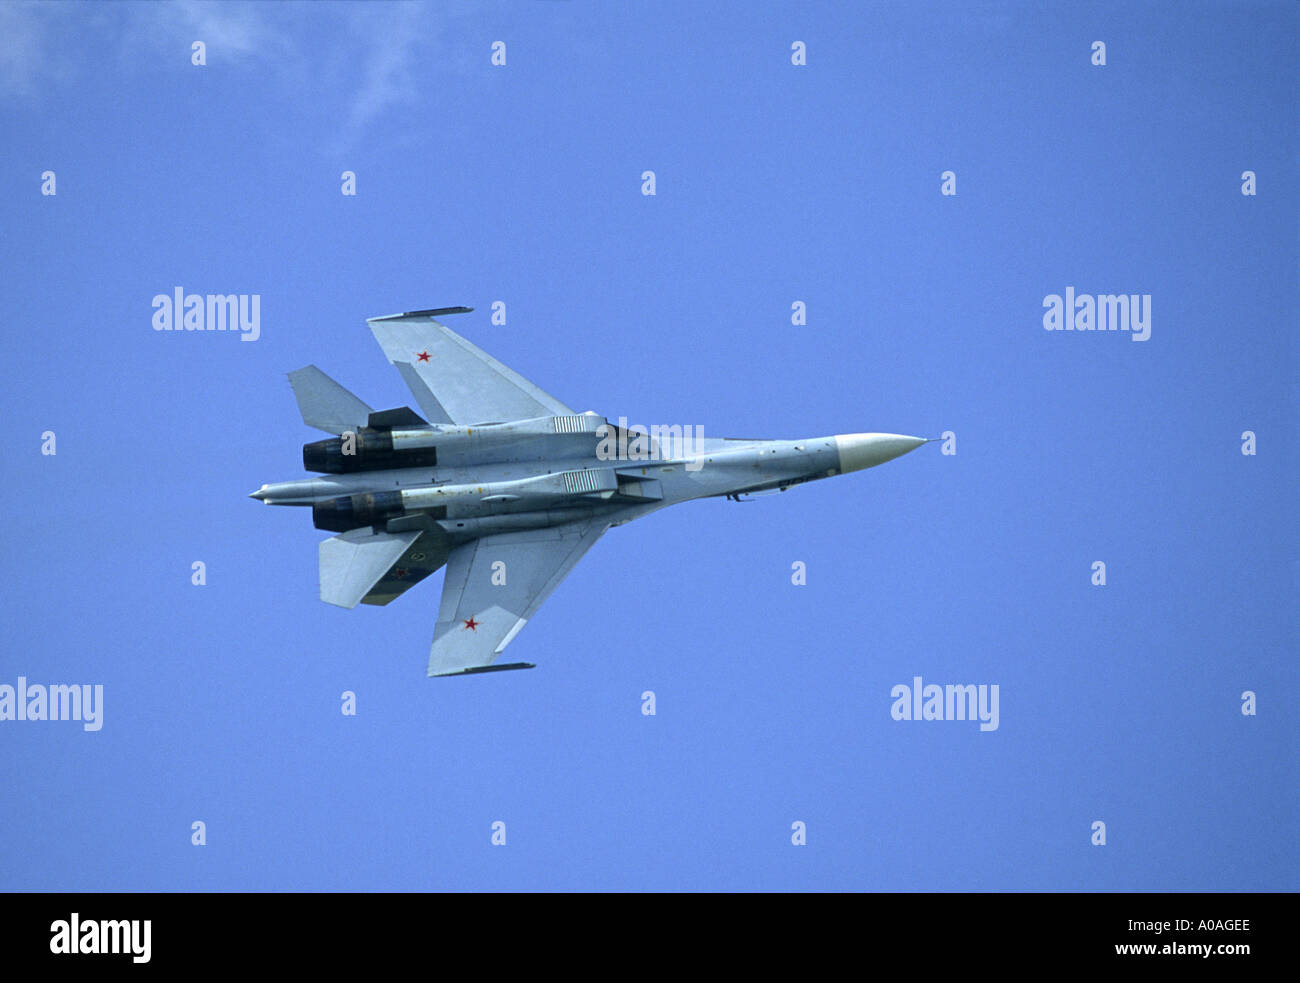 Russian Airforce SU27 Flanker twin-engine supermanoeuverable fighter aircraft.   GAV 2096-86 - Stock Image